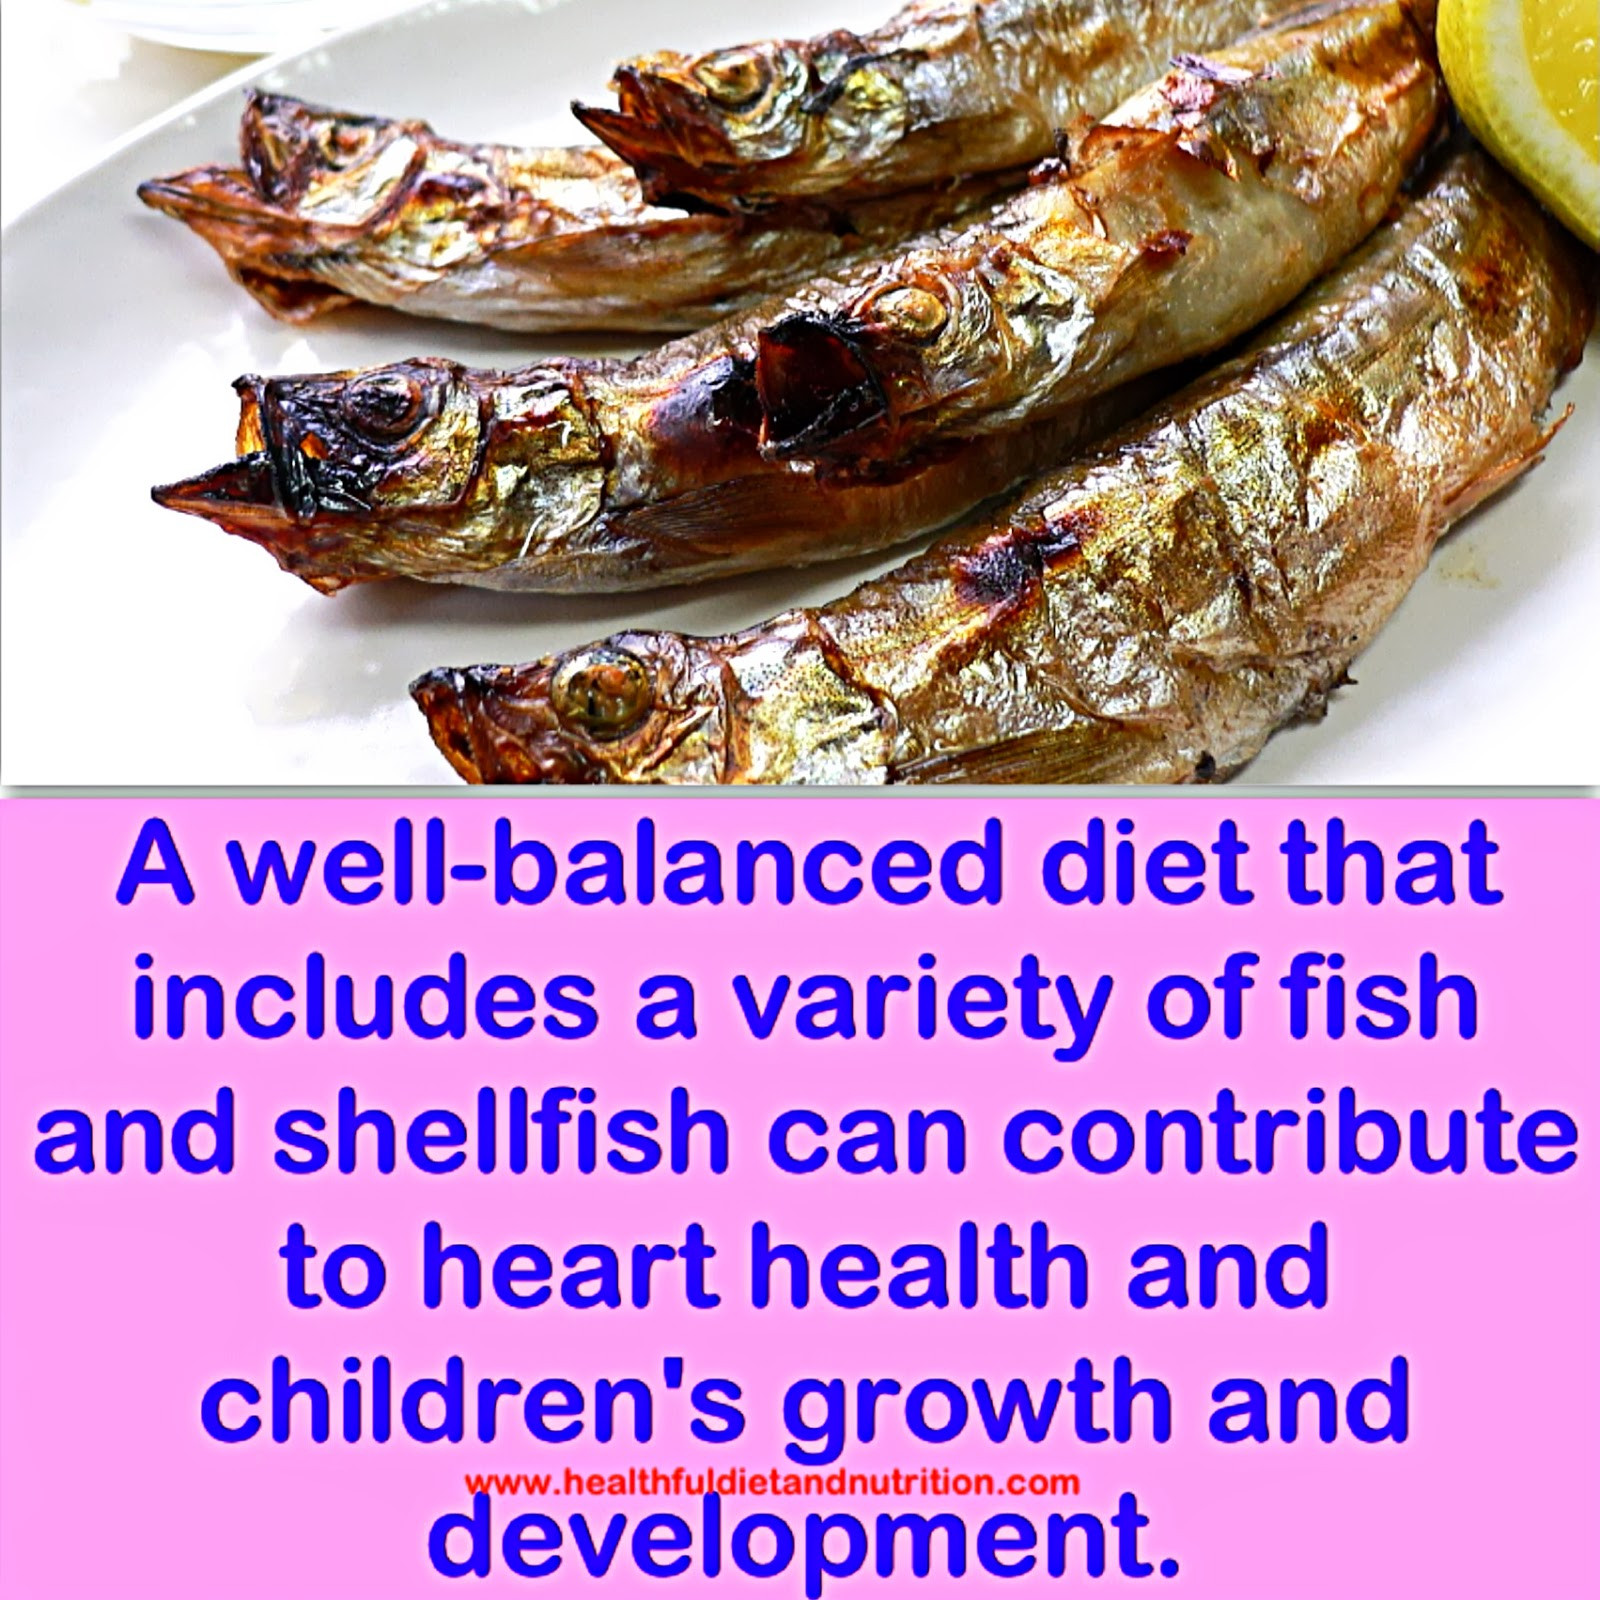 Consume A Variety of Fish and Shell Fish